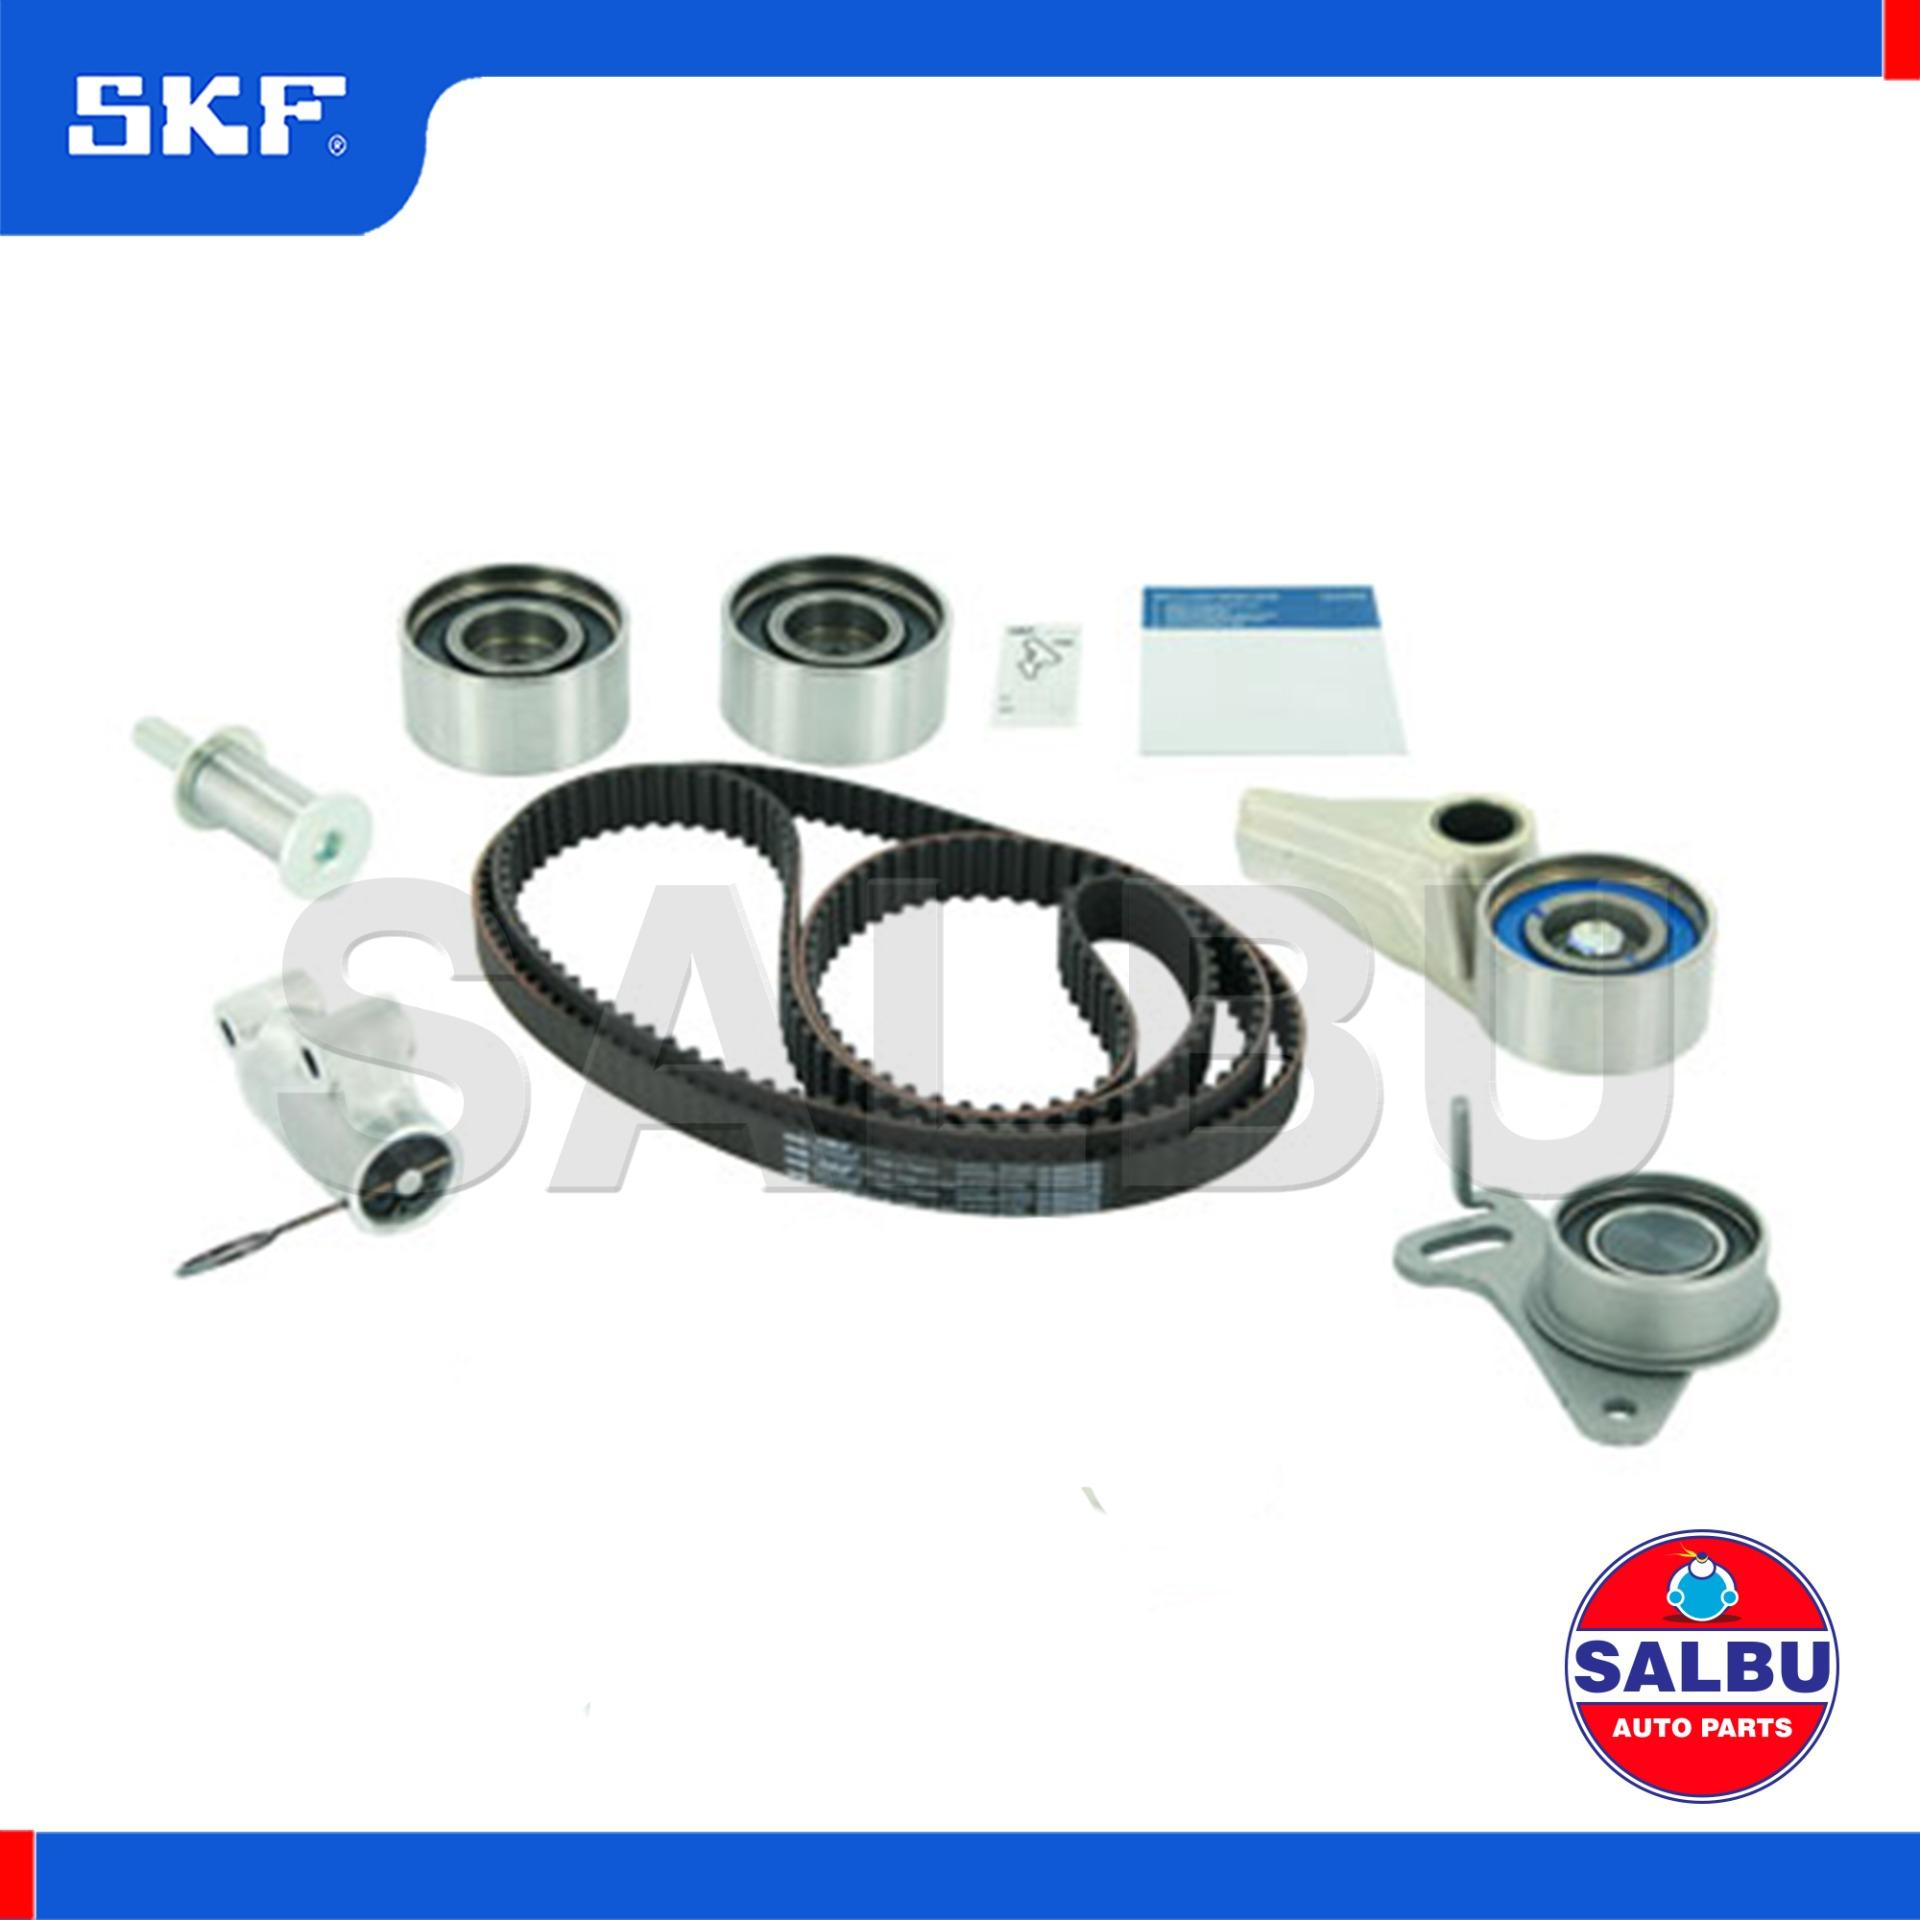 SKF VKMA 95976 Timing belt and component kit